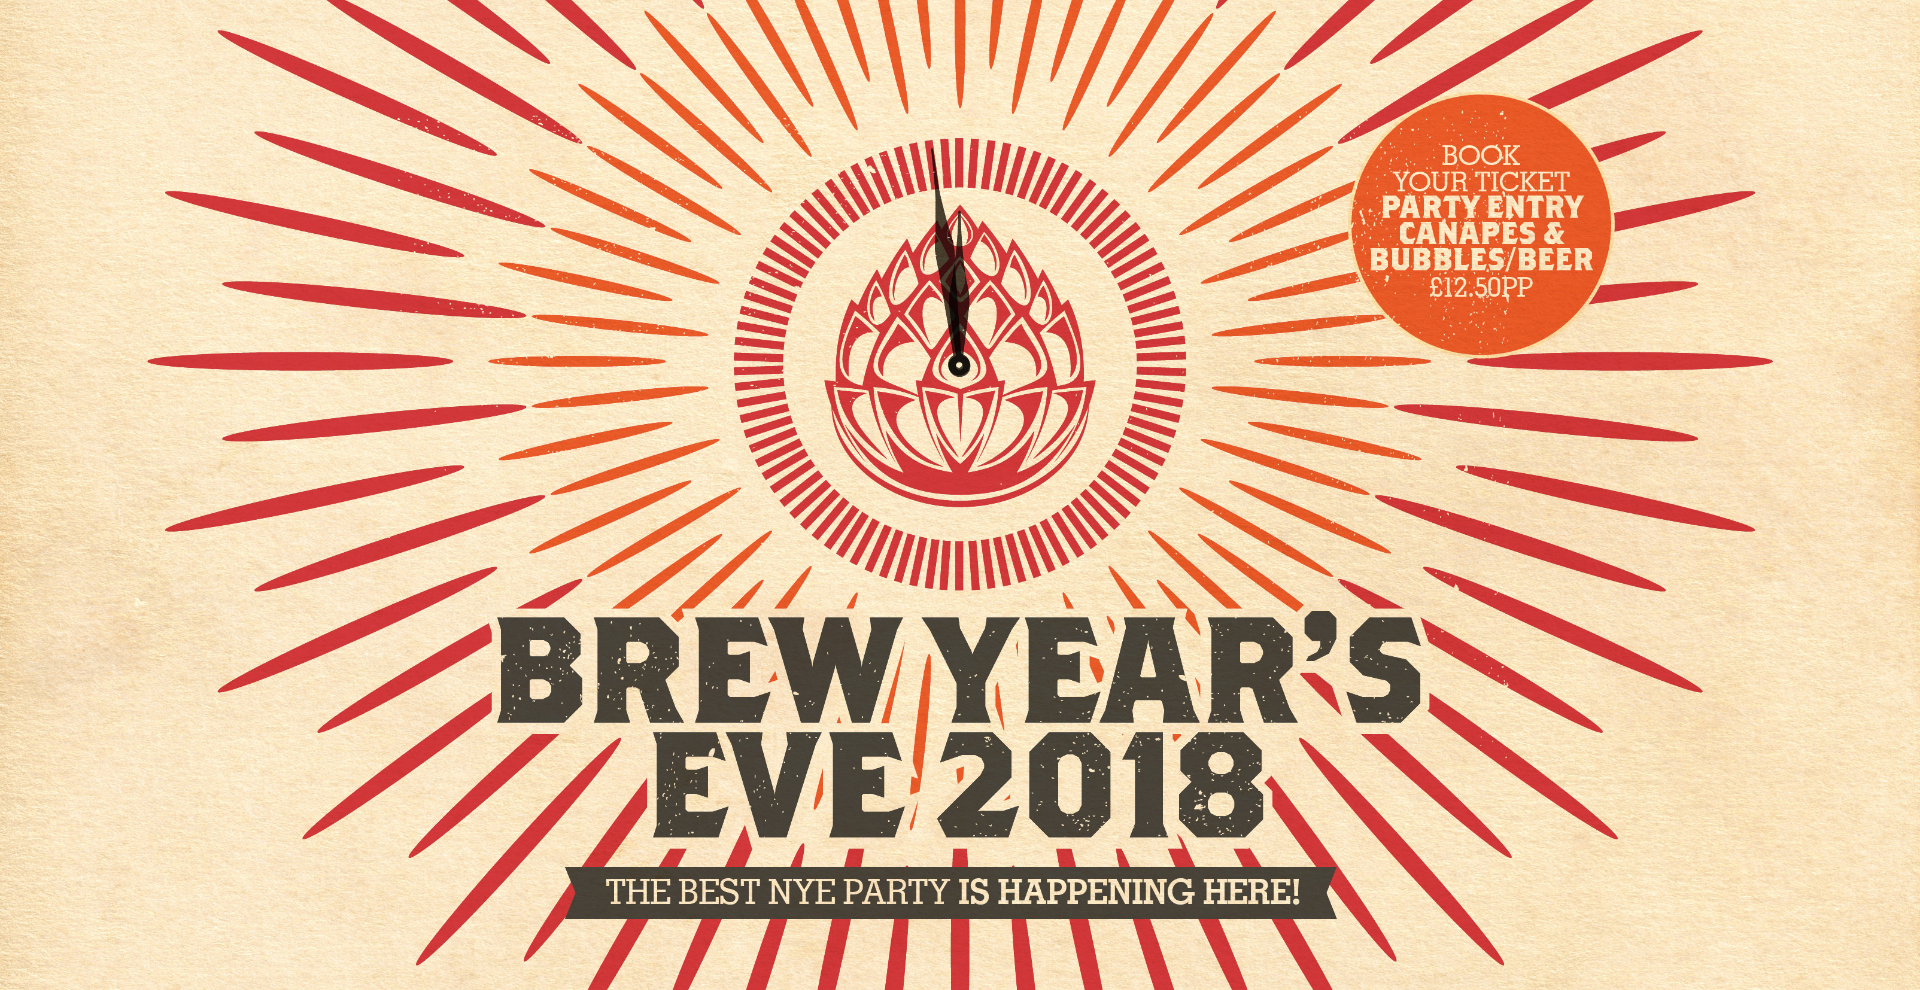 Brew Year's Eve - Bedford